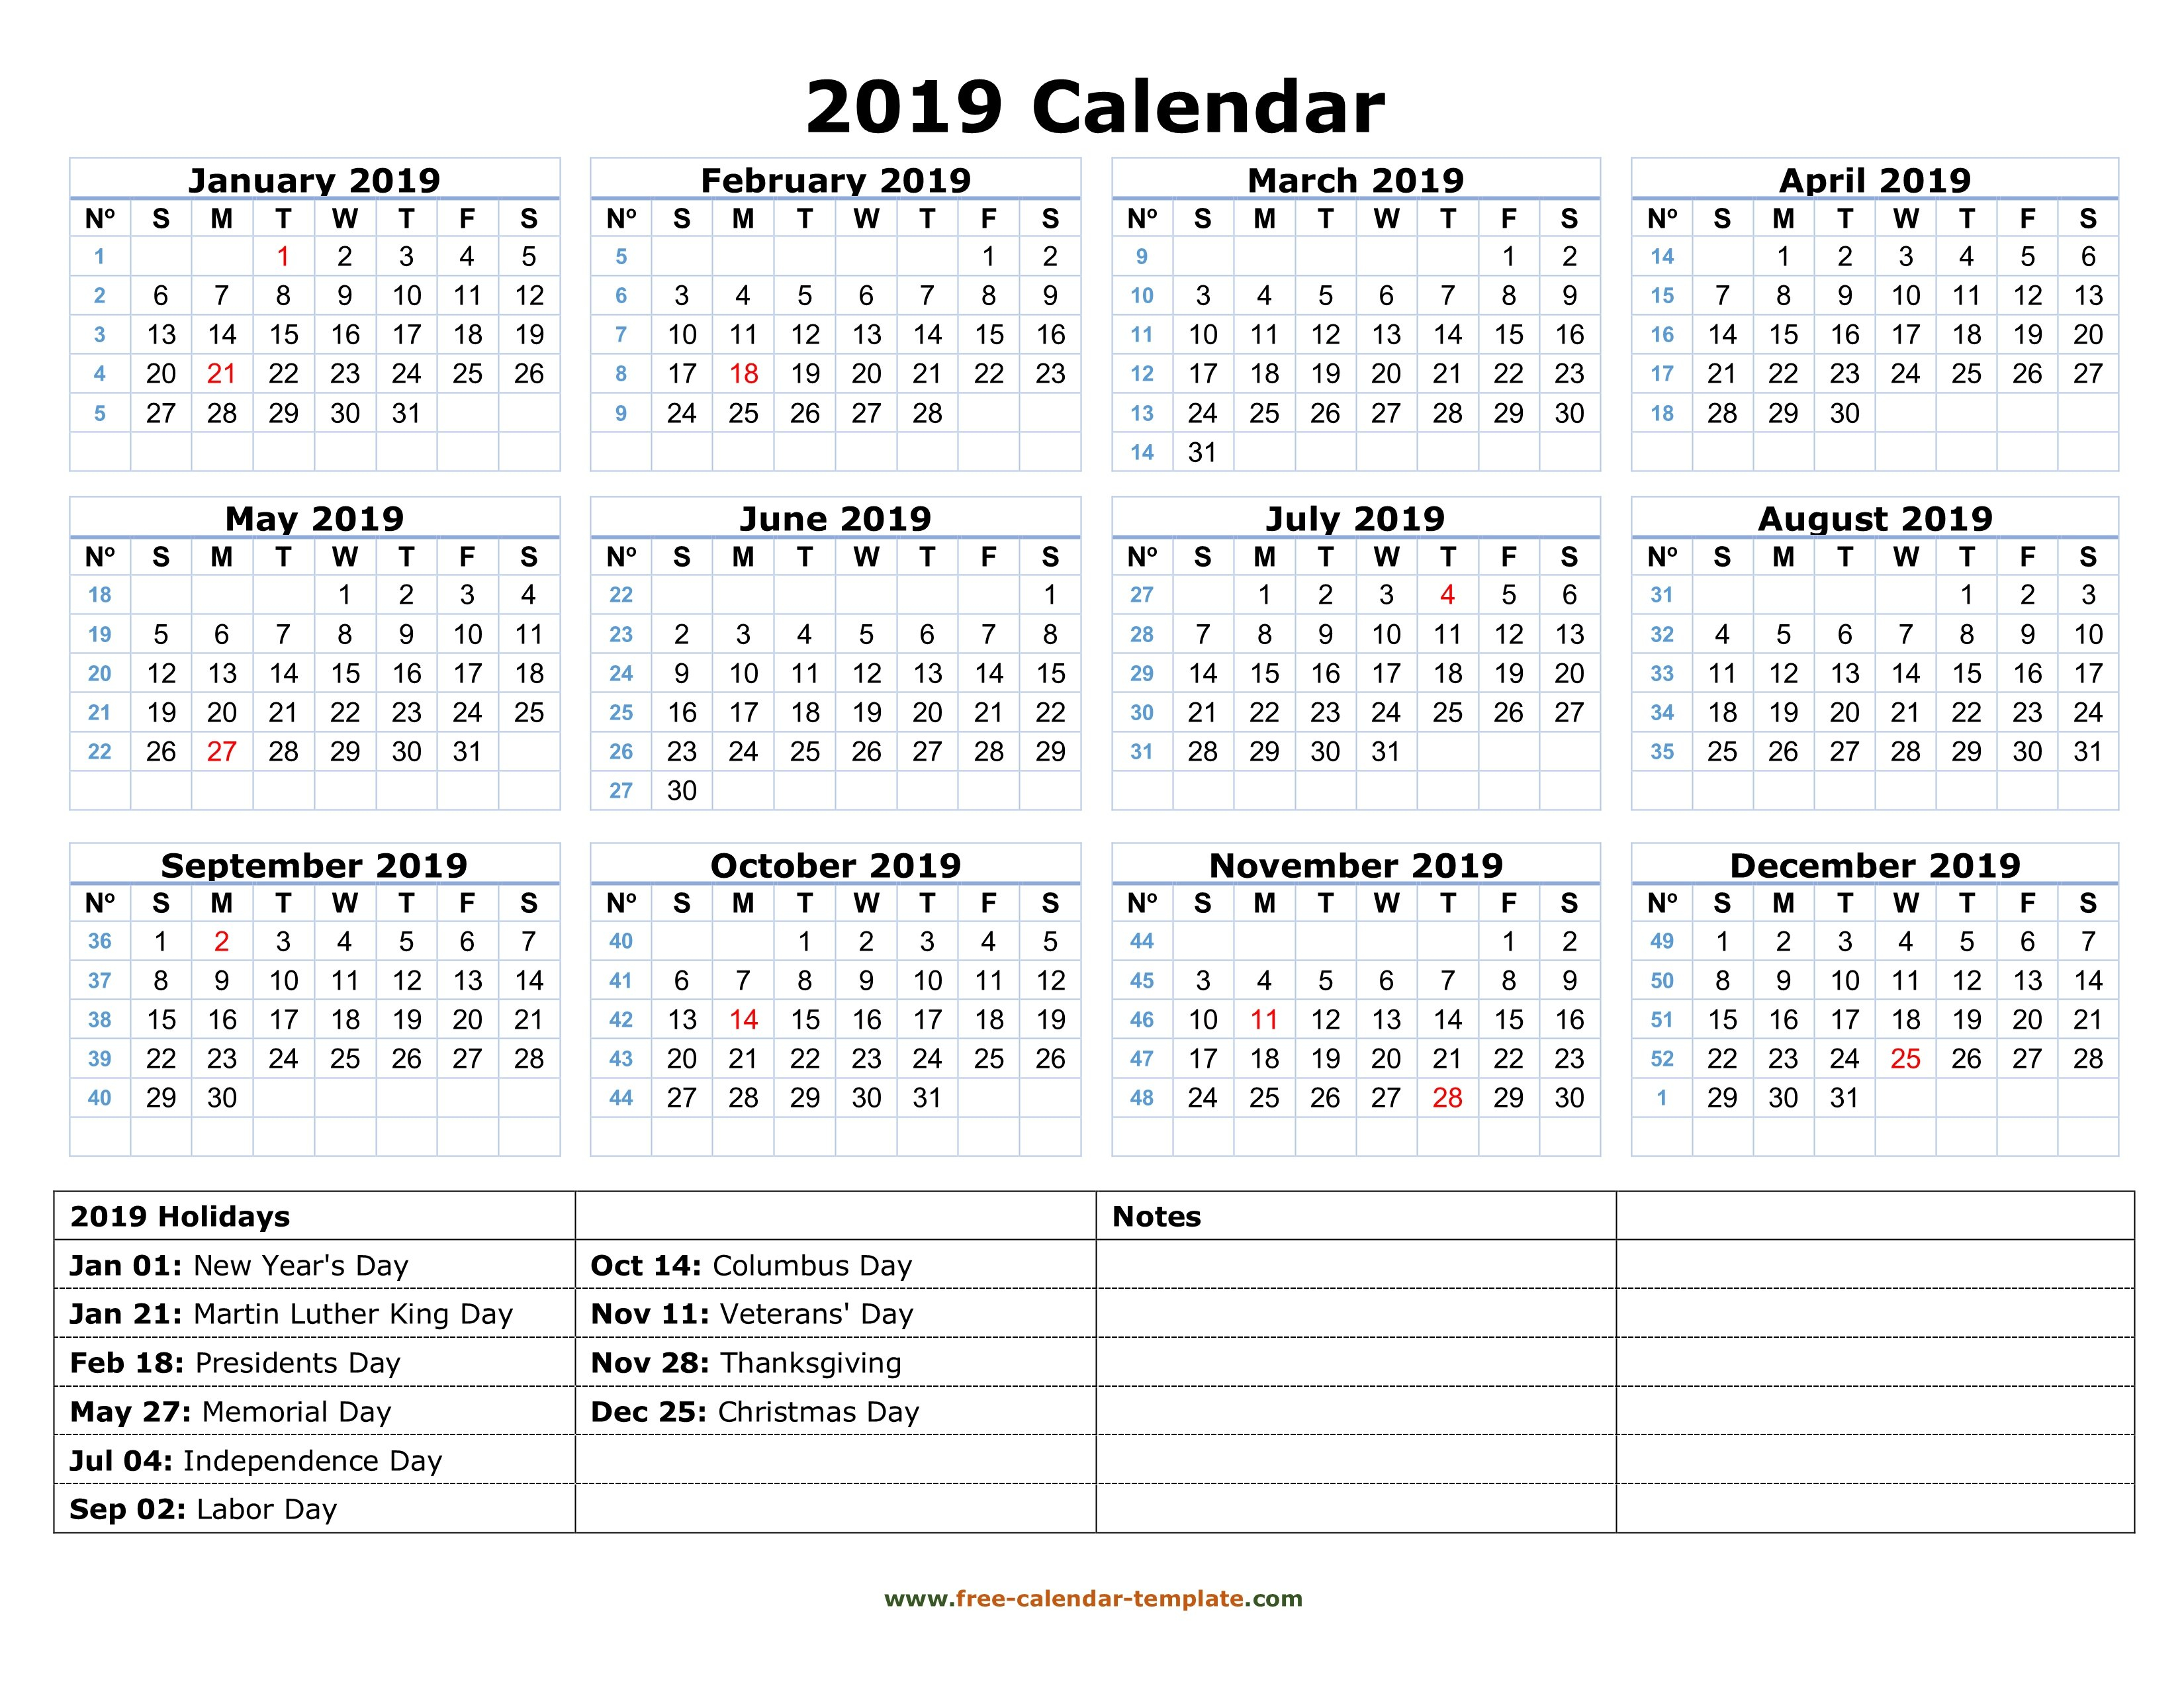 Printable Yearly Calendar 2019 With Us Holidays | Free-Calendar Calendar 2019 Pdf Free Download